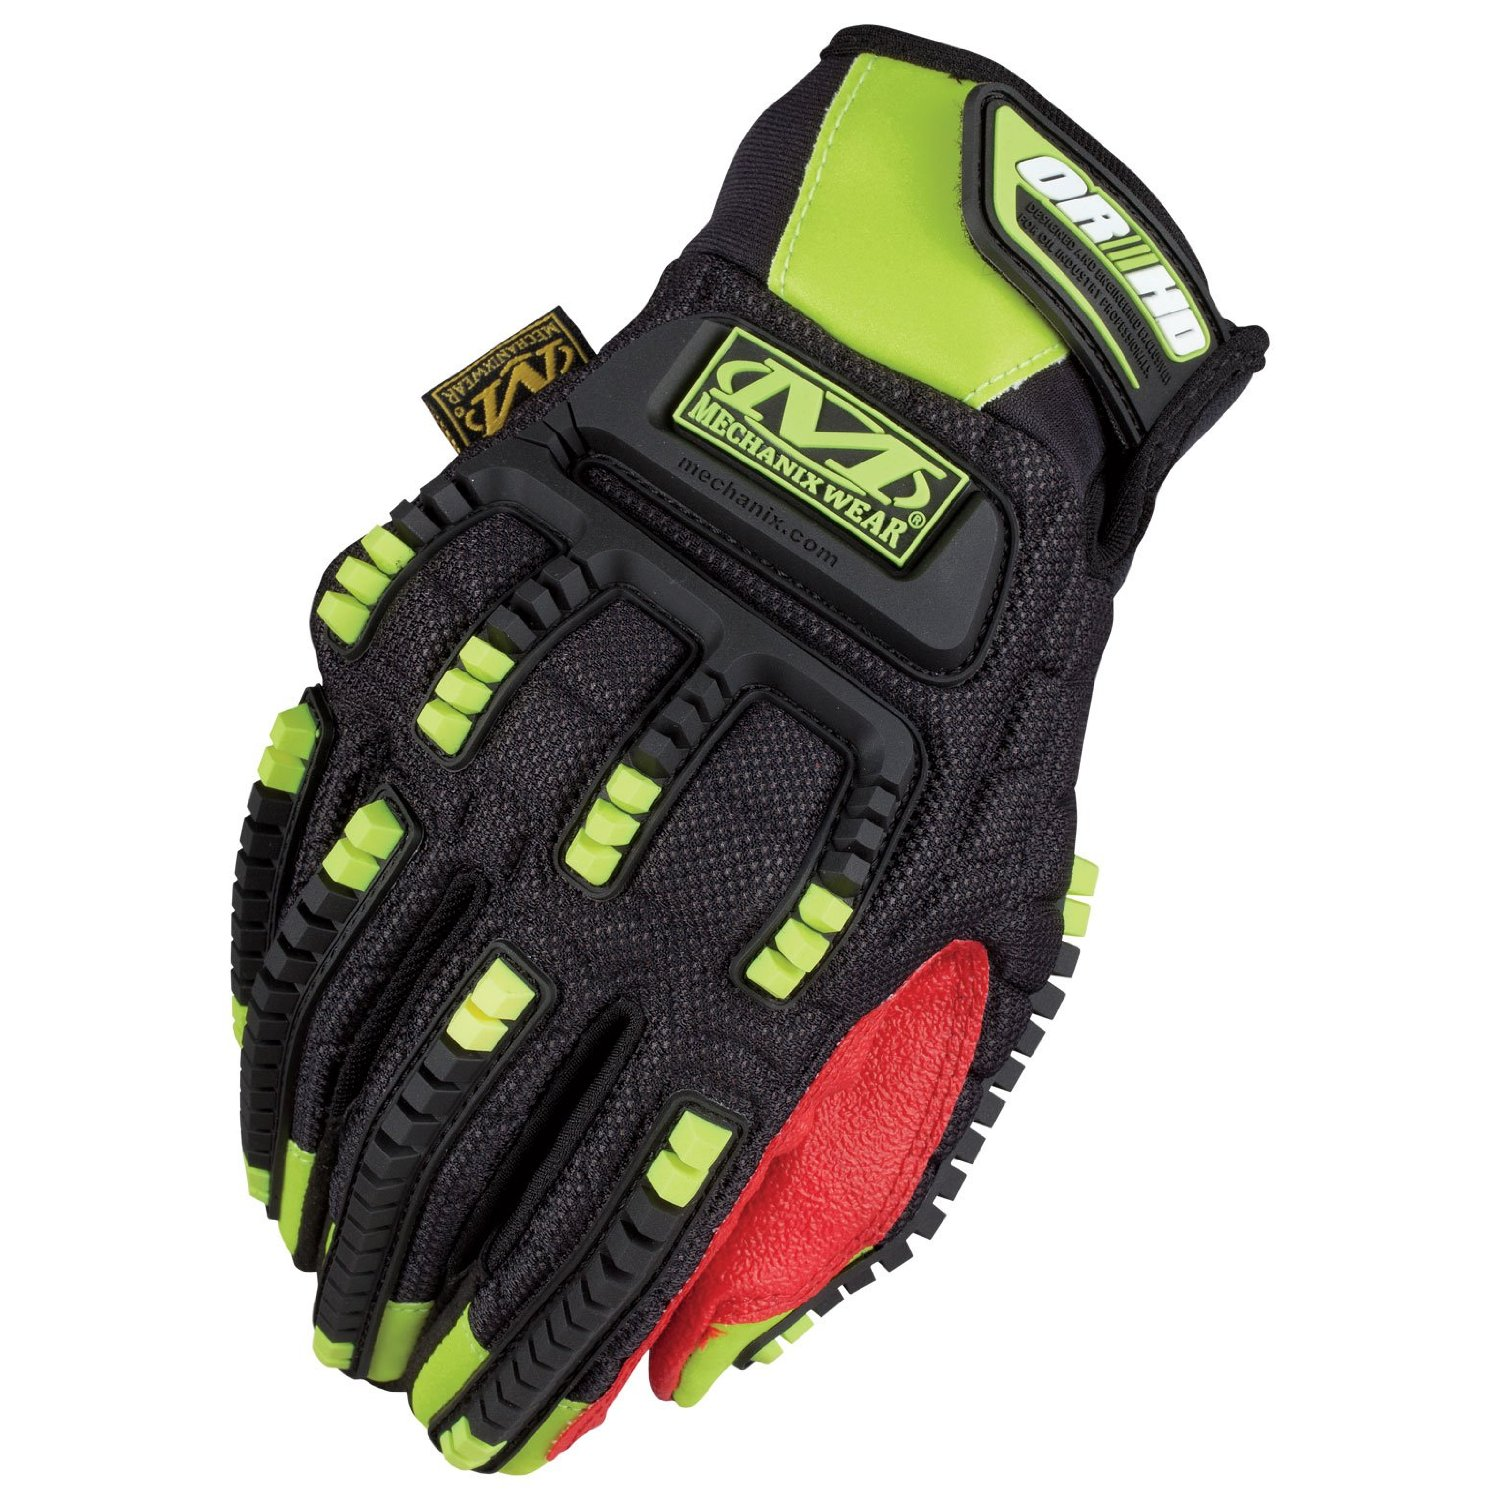 Mechanix Wear SHD-91-011 Safety Mpact ORHD Hi-Viz Gloves, Yellow, XLarge